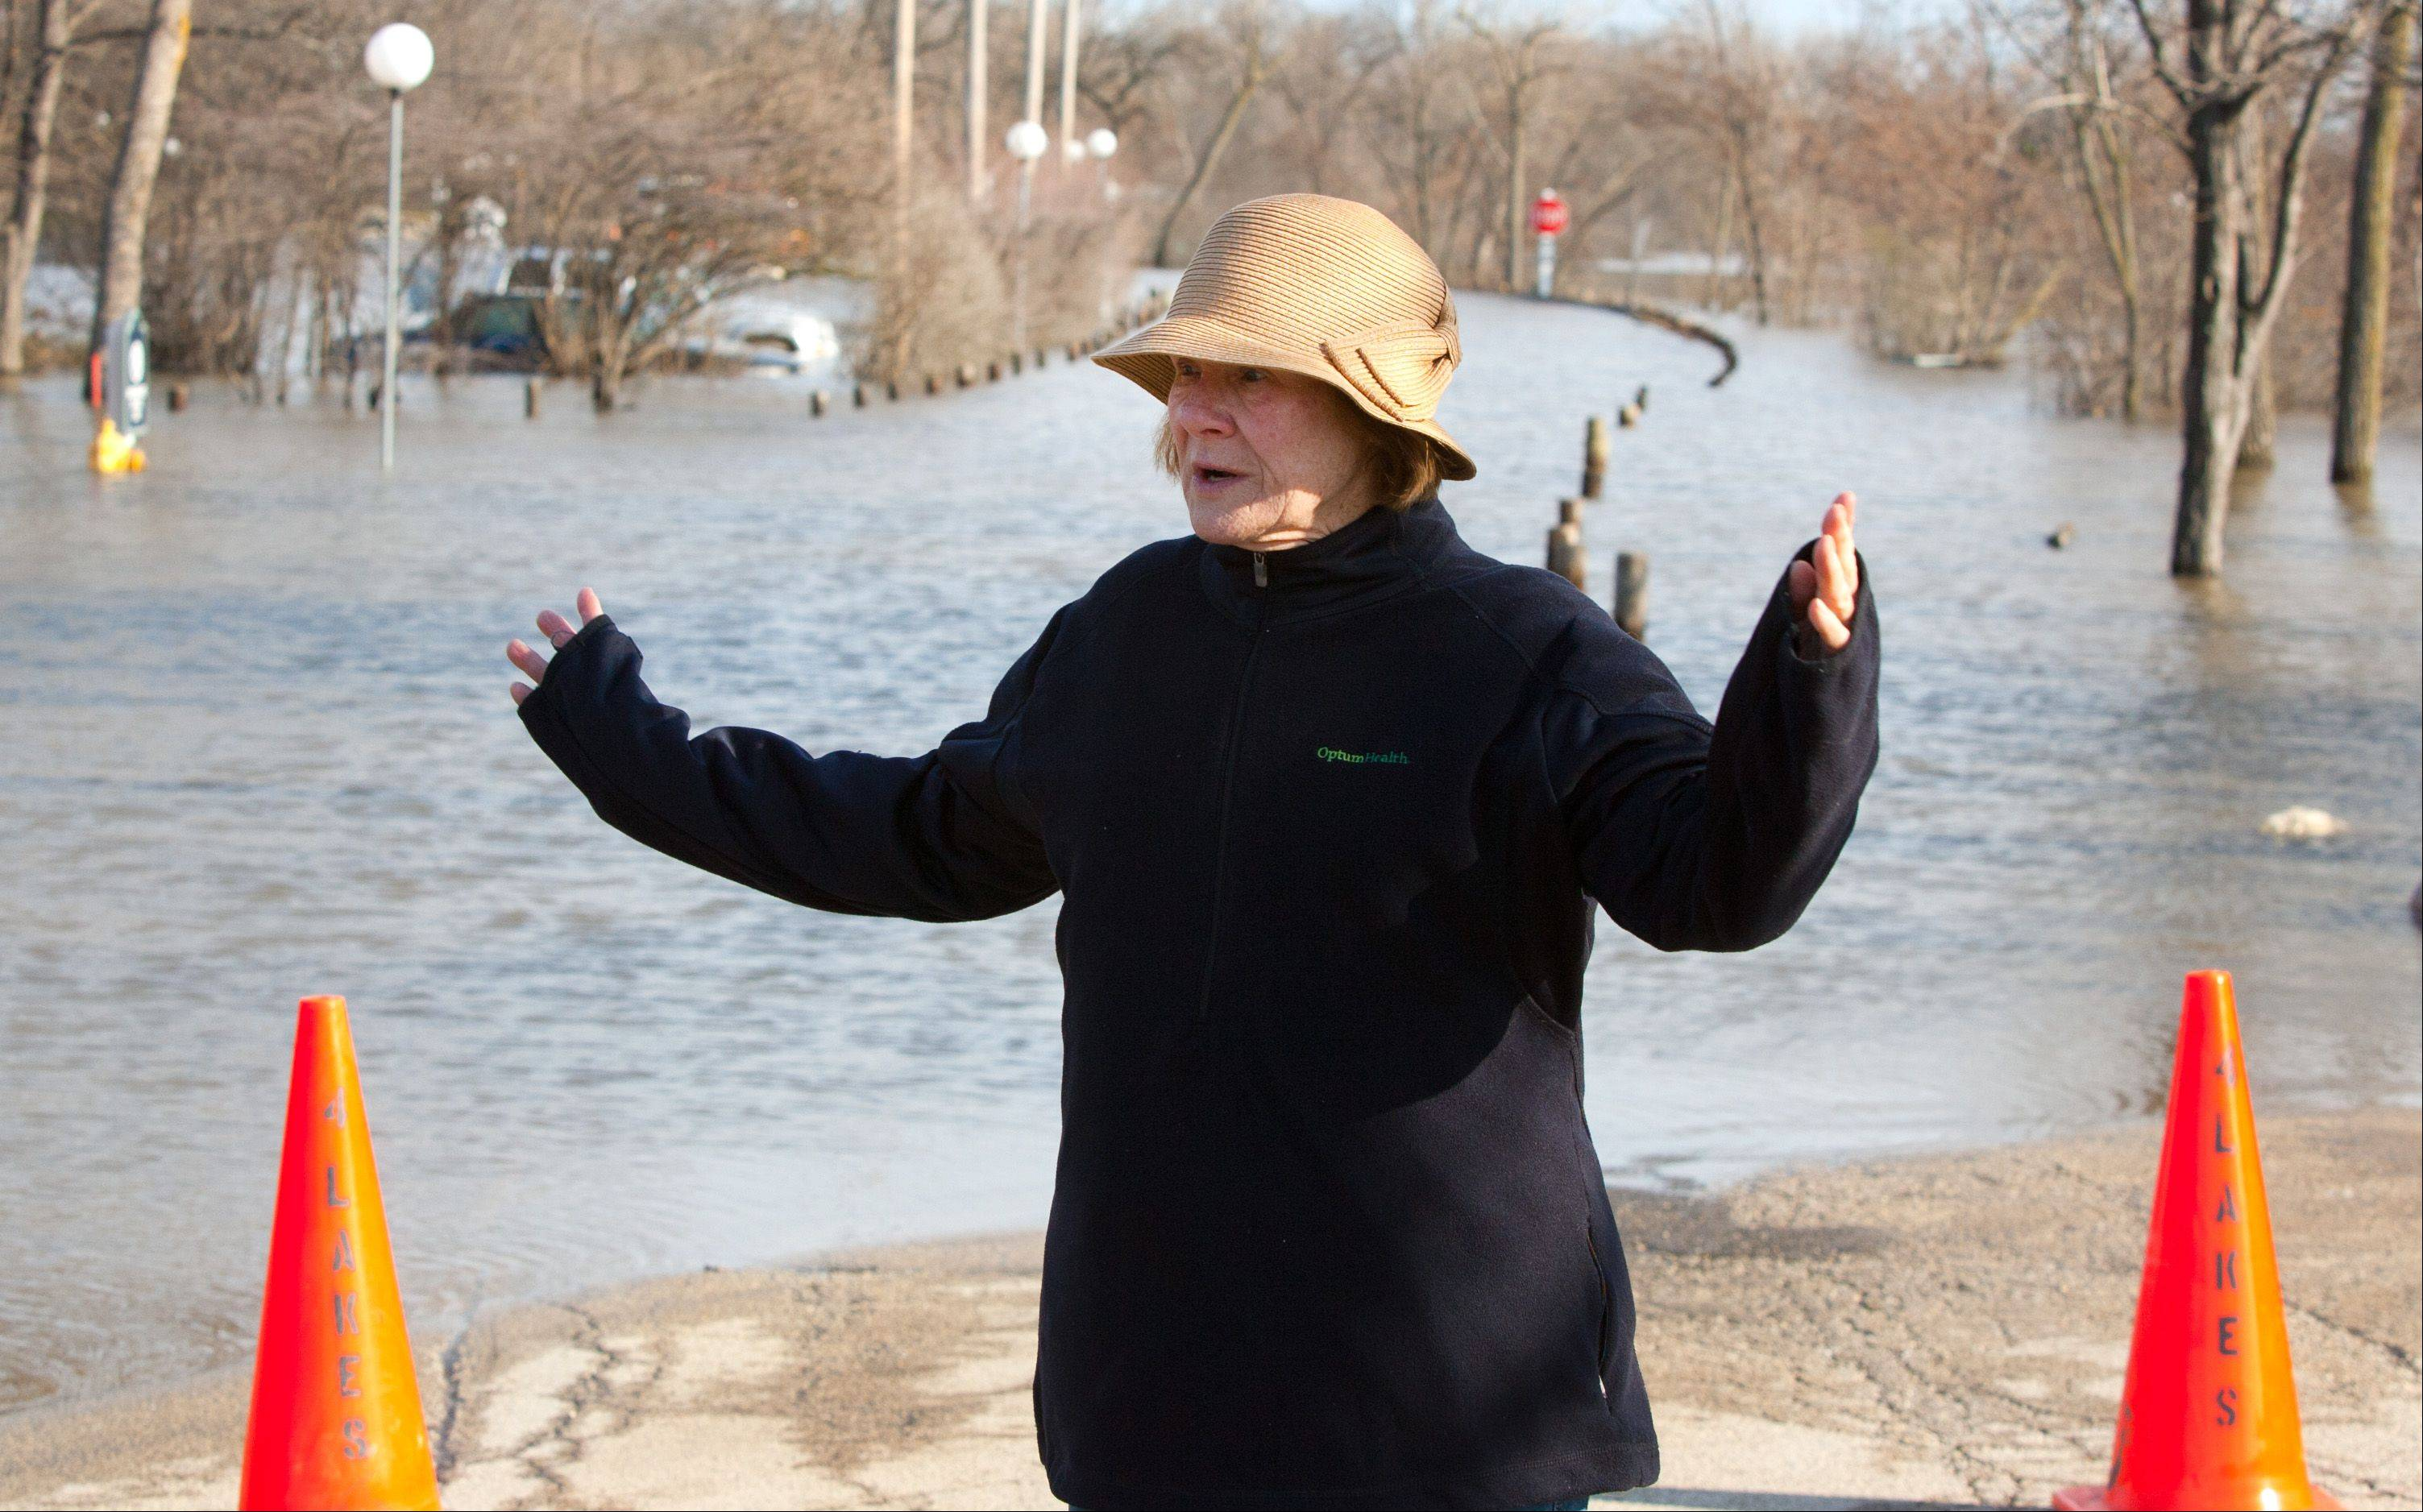 Towers at Four Lakes resident Barbara Joan Boudette talks about the volume and velocity of floodwater that engulfed many Lisle properties. There is only one road in and out of her side of the apartment complex.